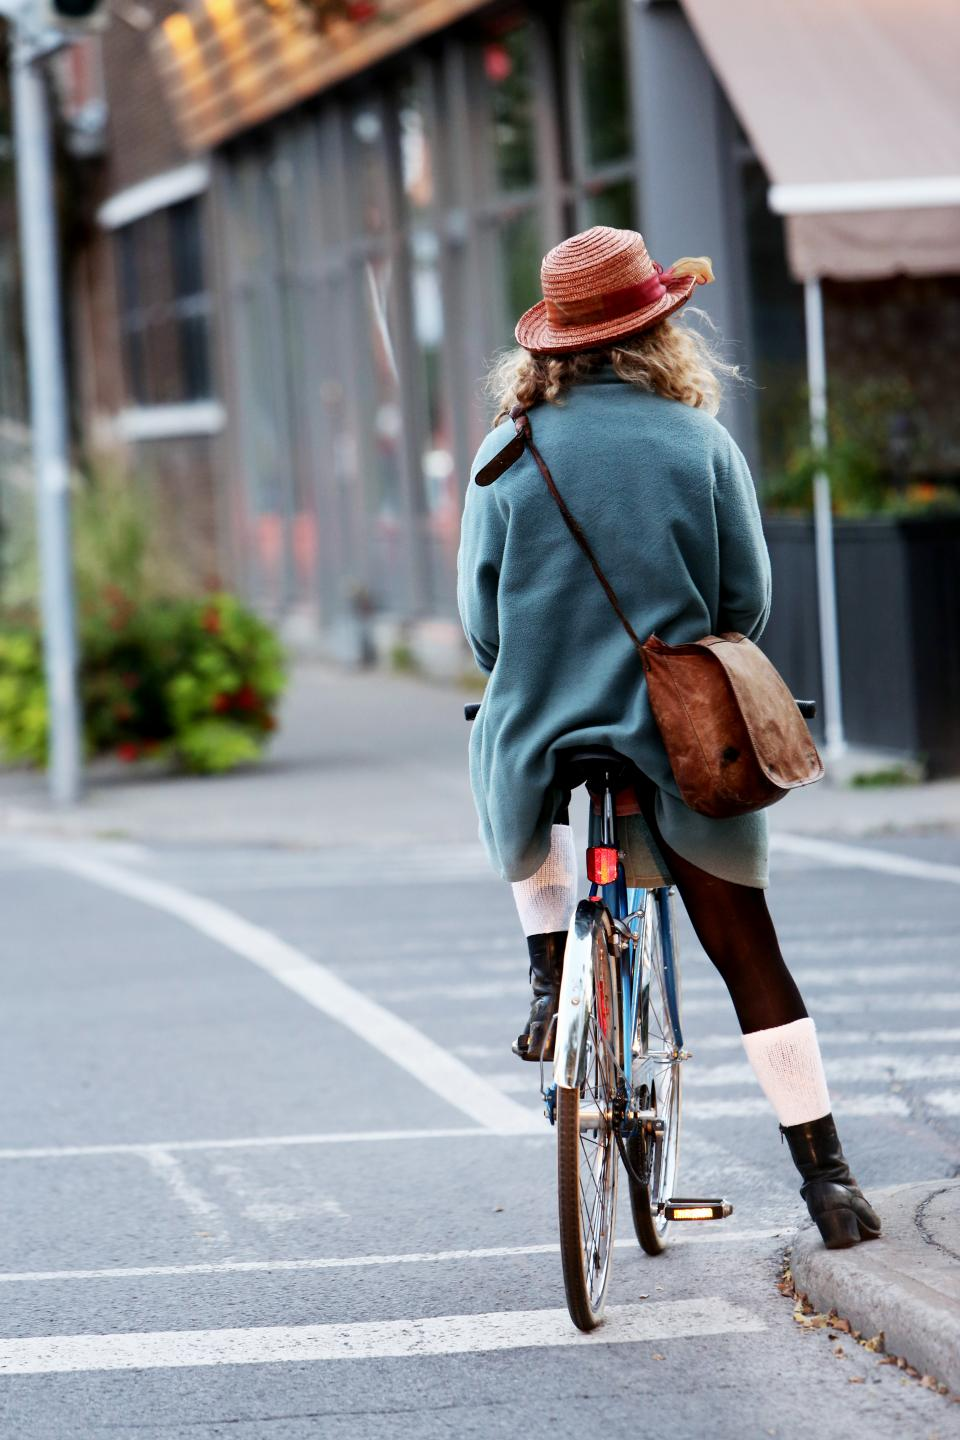 girl woman cyclist bike bicycle street road intersection crosswalk city urban bag hat people